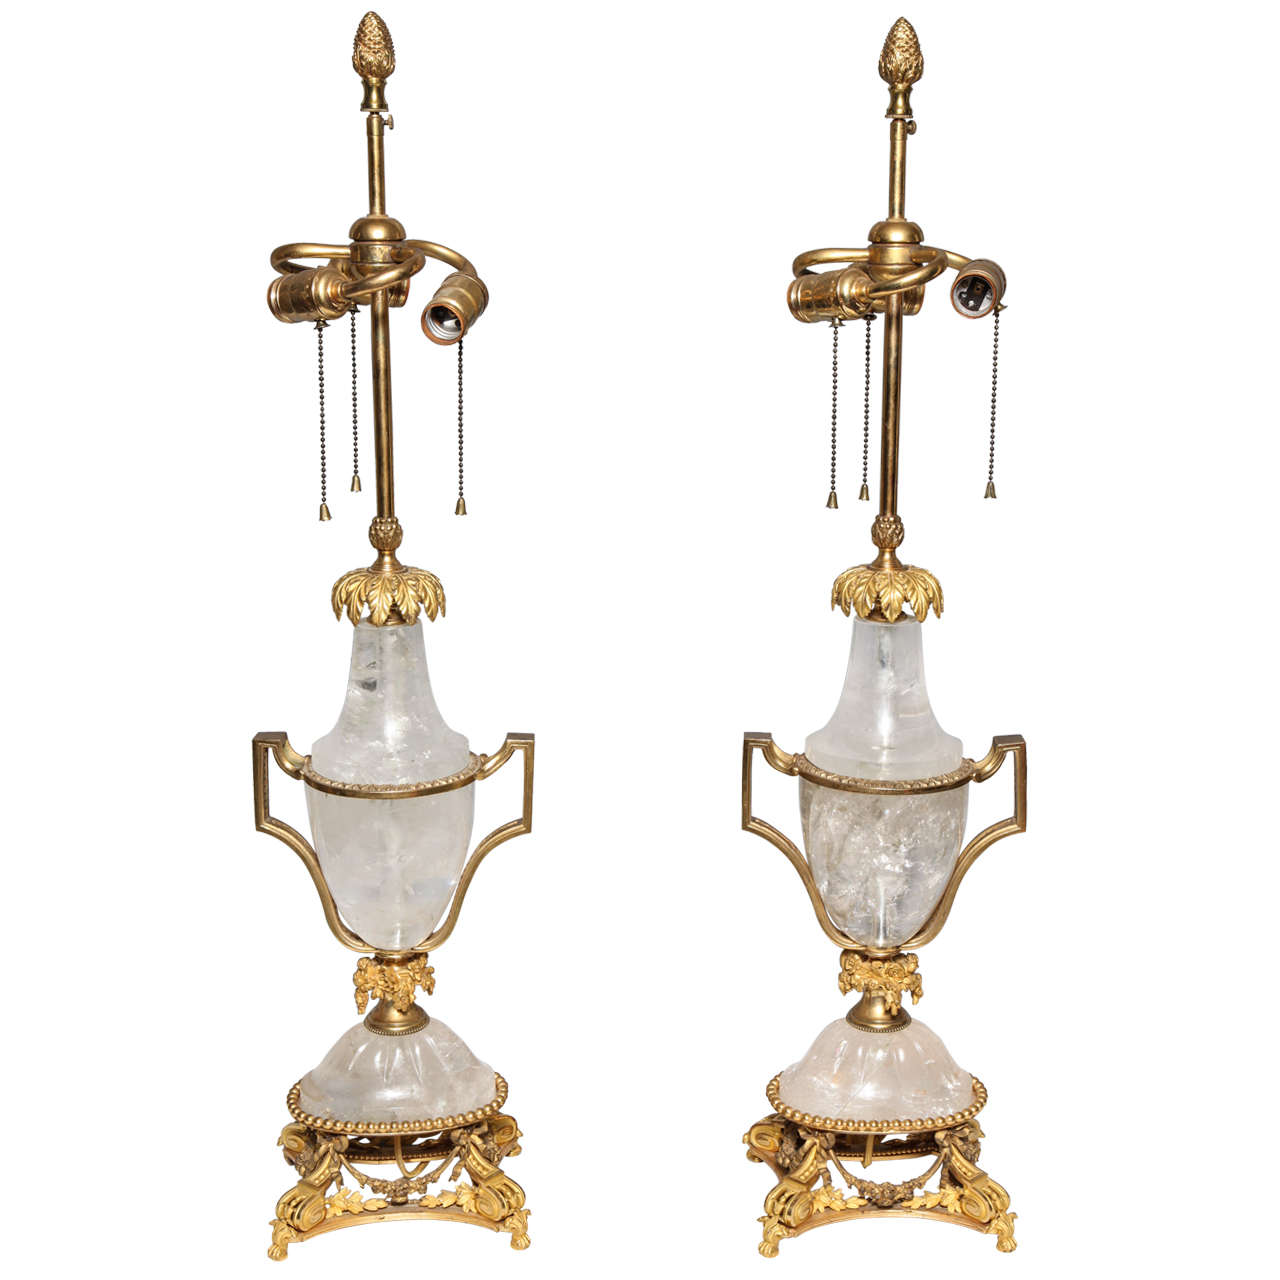 Pair of Unique Antique French Louis XVI Style Gilt Bronze   Rock Crystal  Lamps 1Pair of Unique Antique French Louis XVI Style Gilt Bronze and Rock  . Antique French Lamps On Ebay. Home Design Ideas